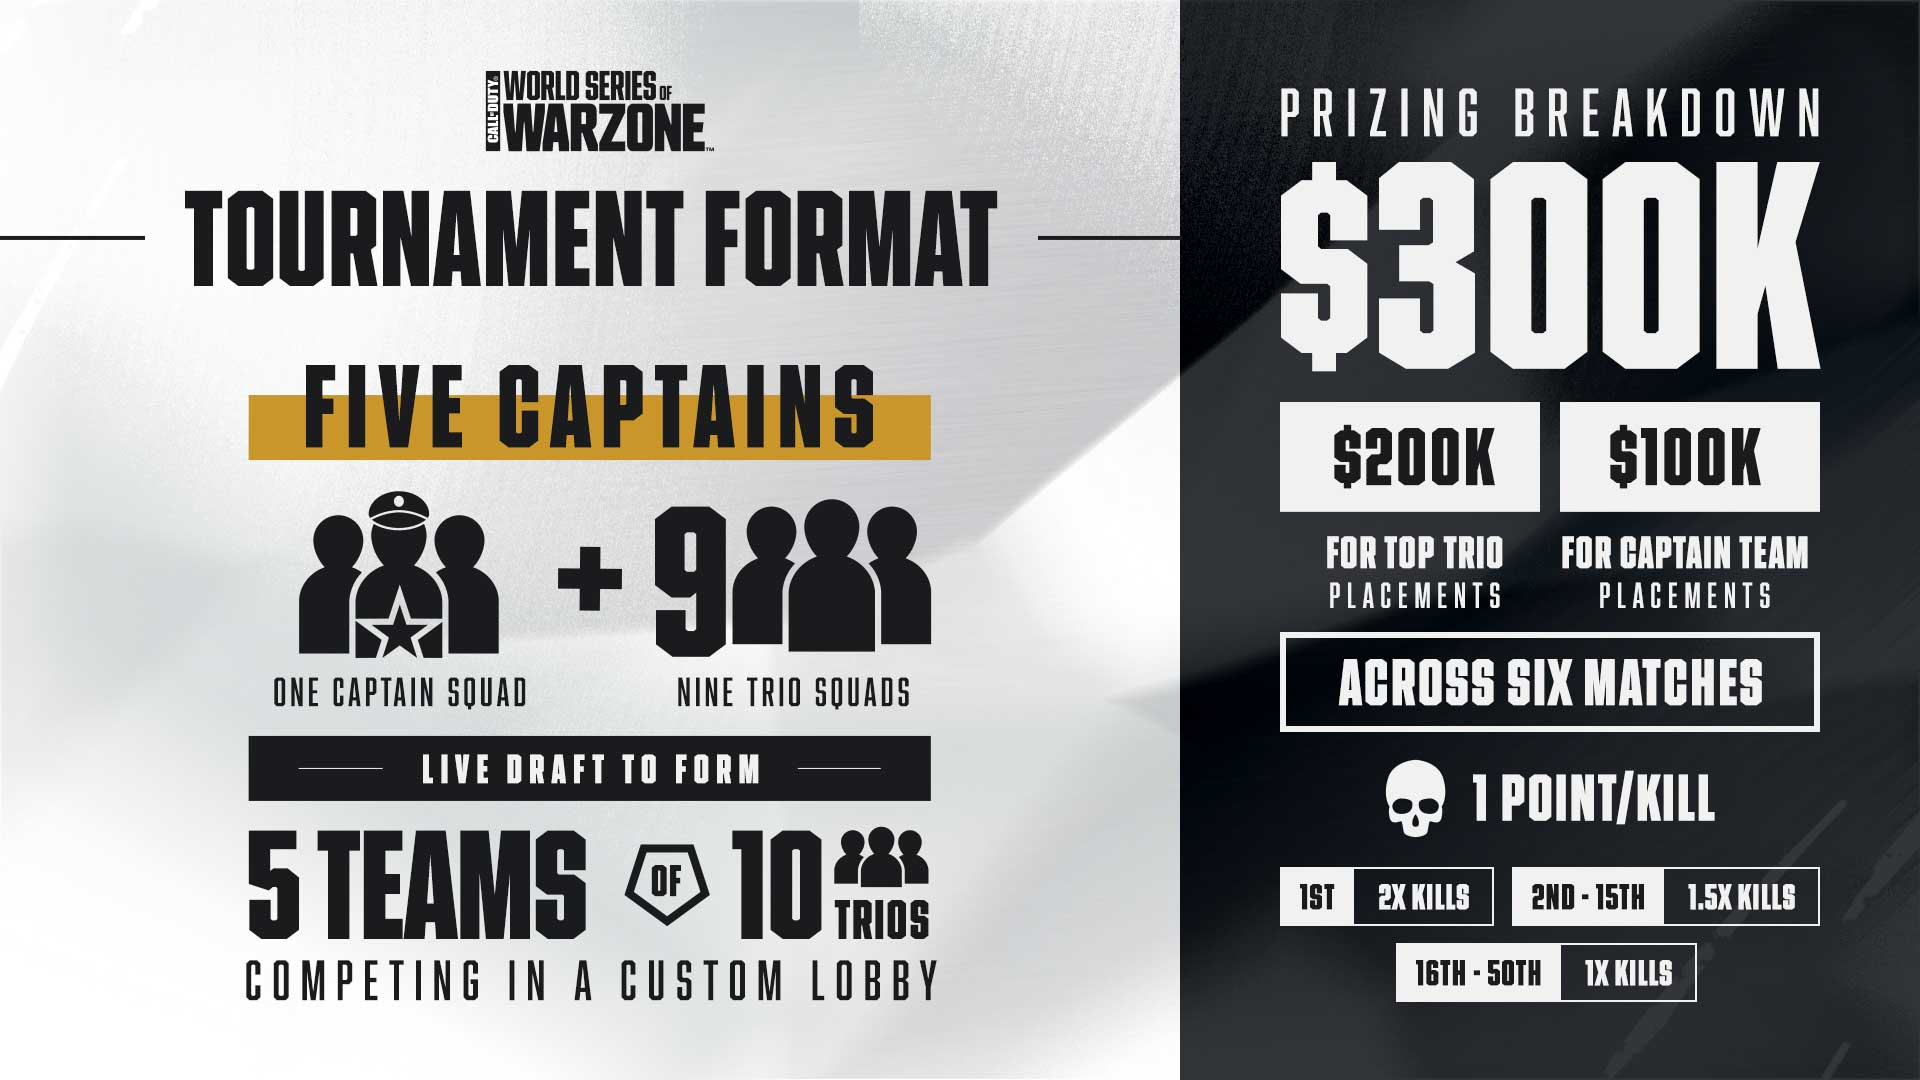 Tournament graphic showing that 5 teams of 10 trios will compete for part of a $300k prize pool